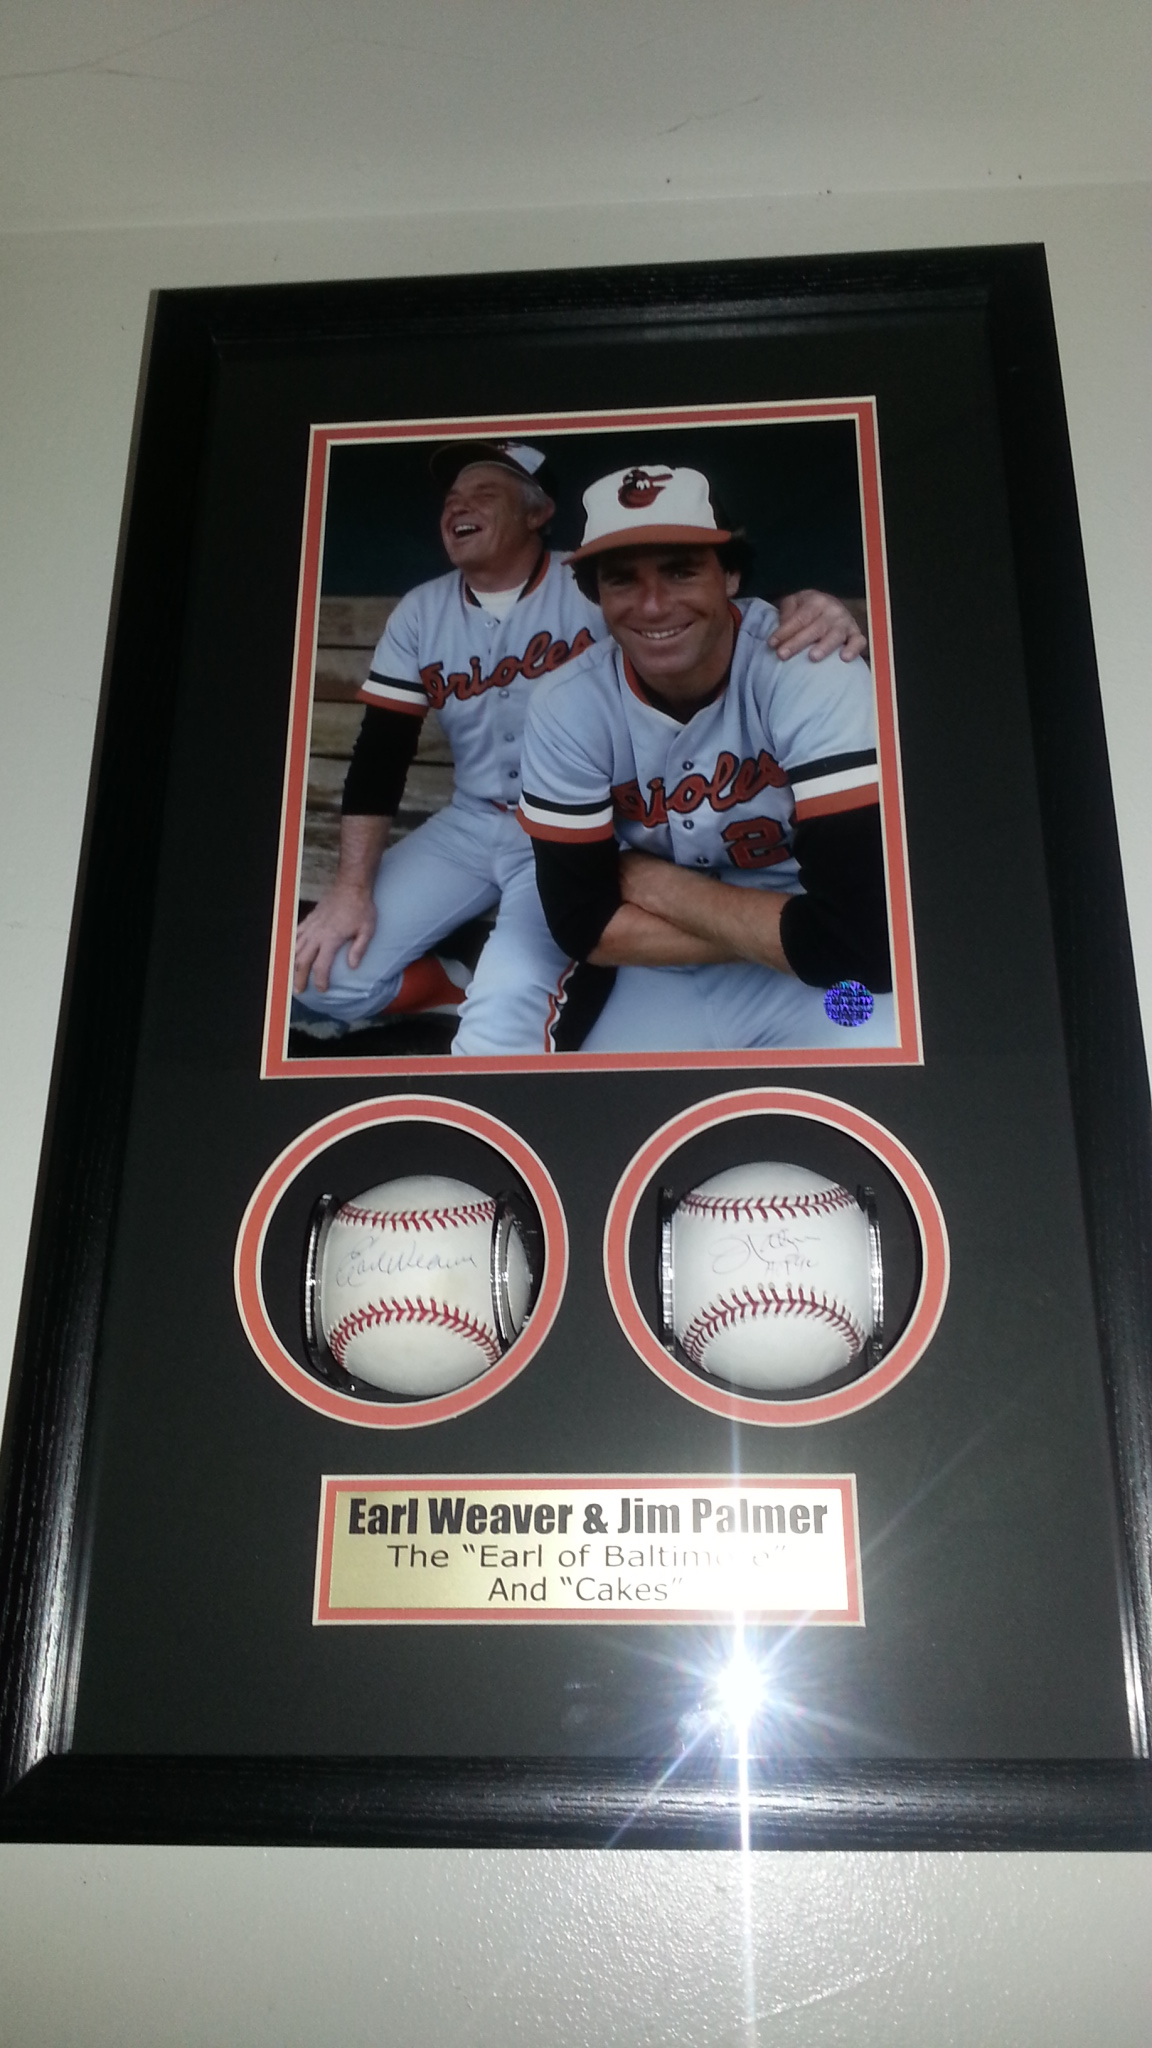 Earl Weaver & Jim Palmer signed baseballs shadowboxed